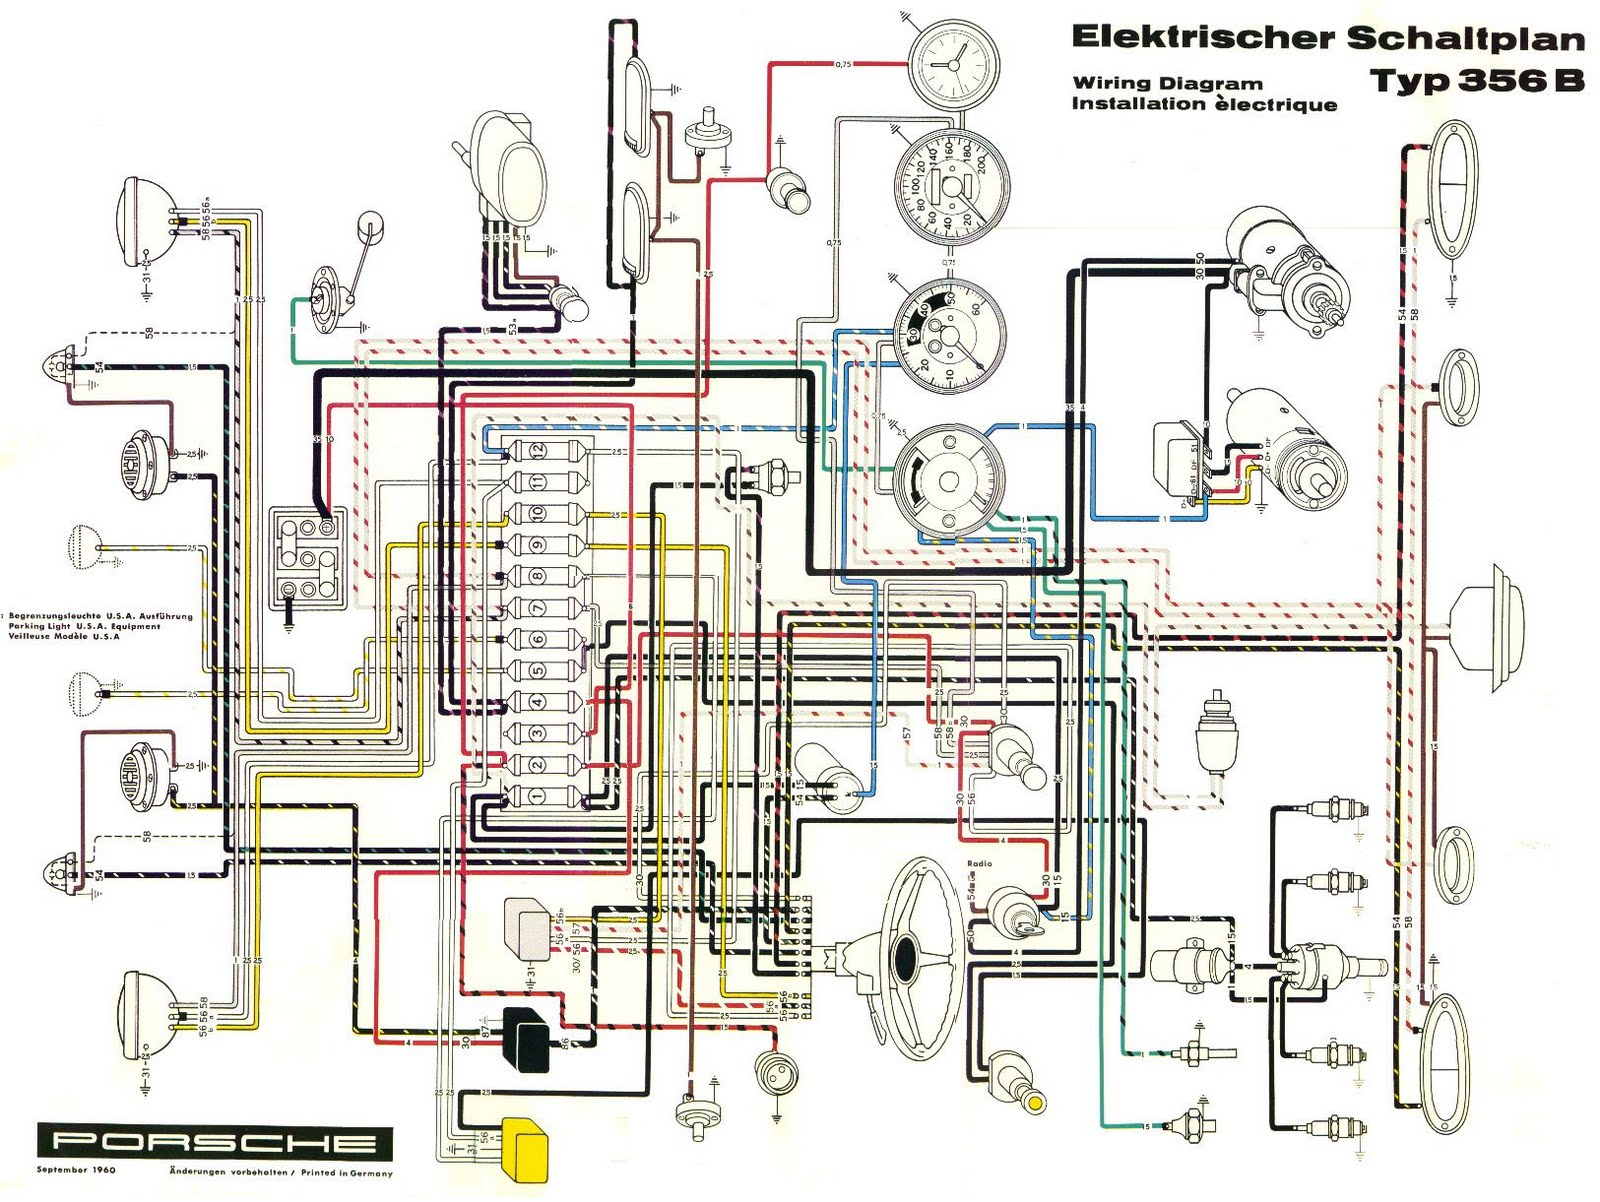 diagrams#1459992: porsche 928 wiring diagram – wiring diagram type, Wiring diagram